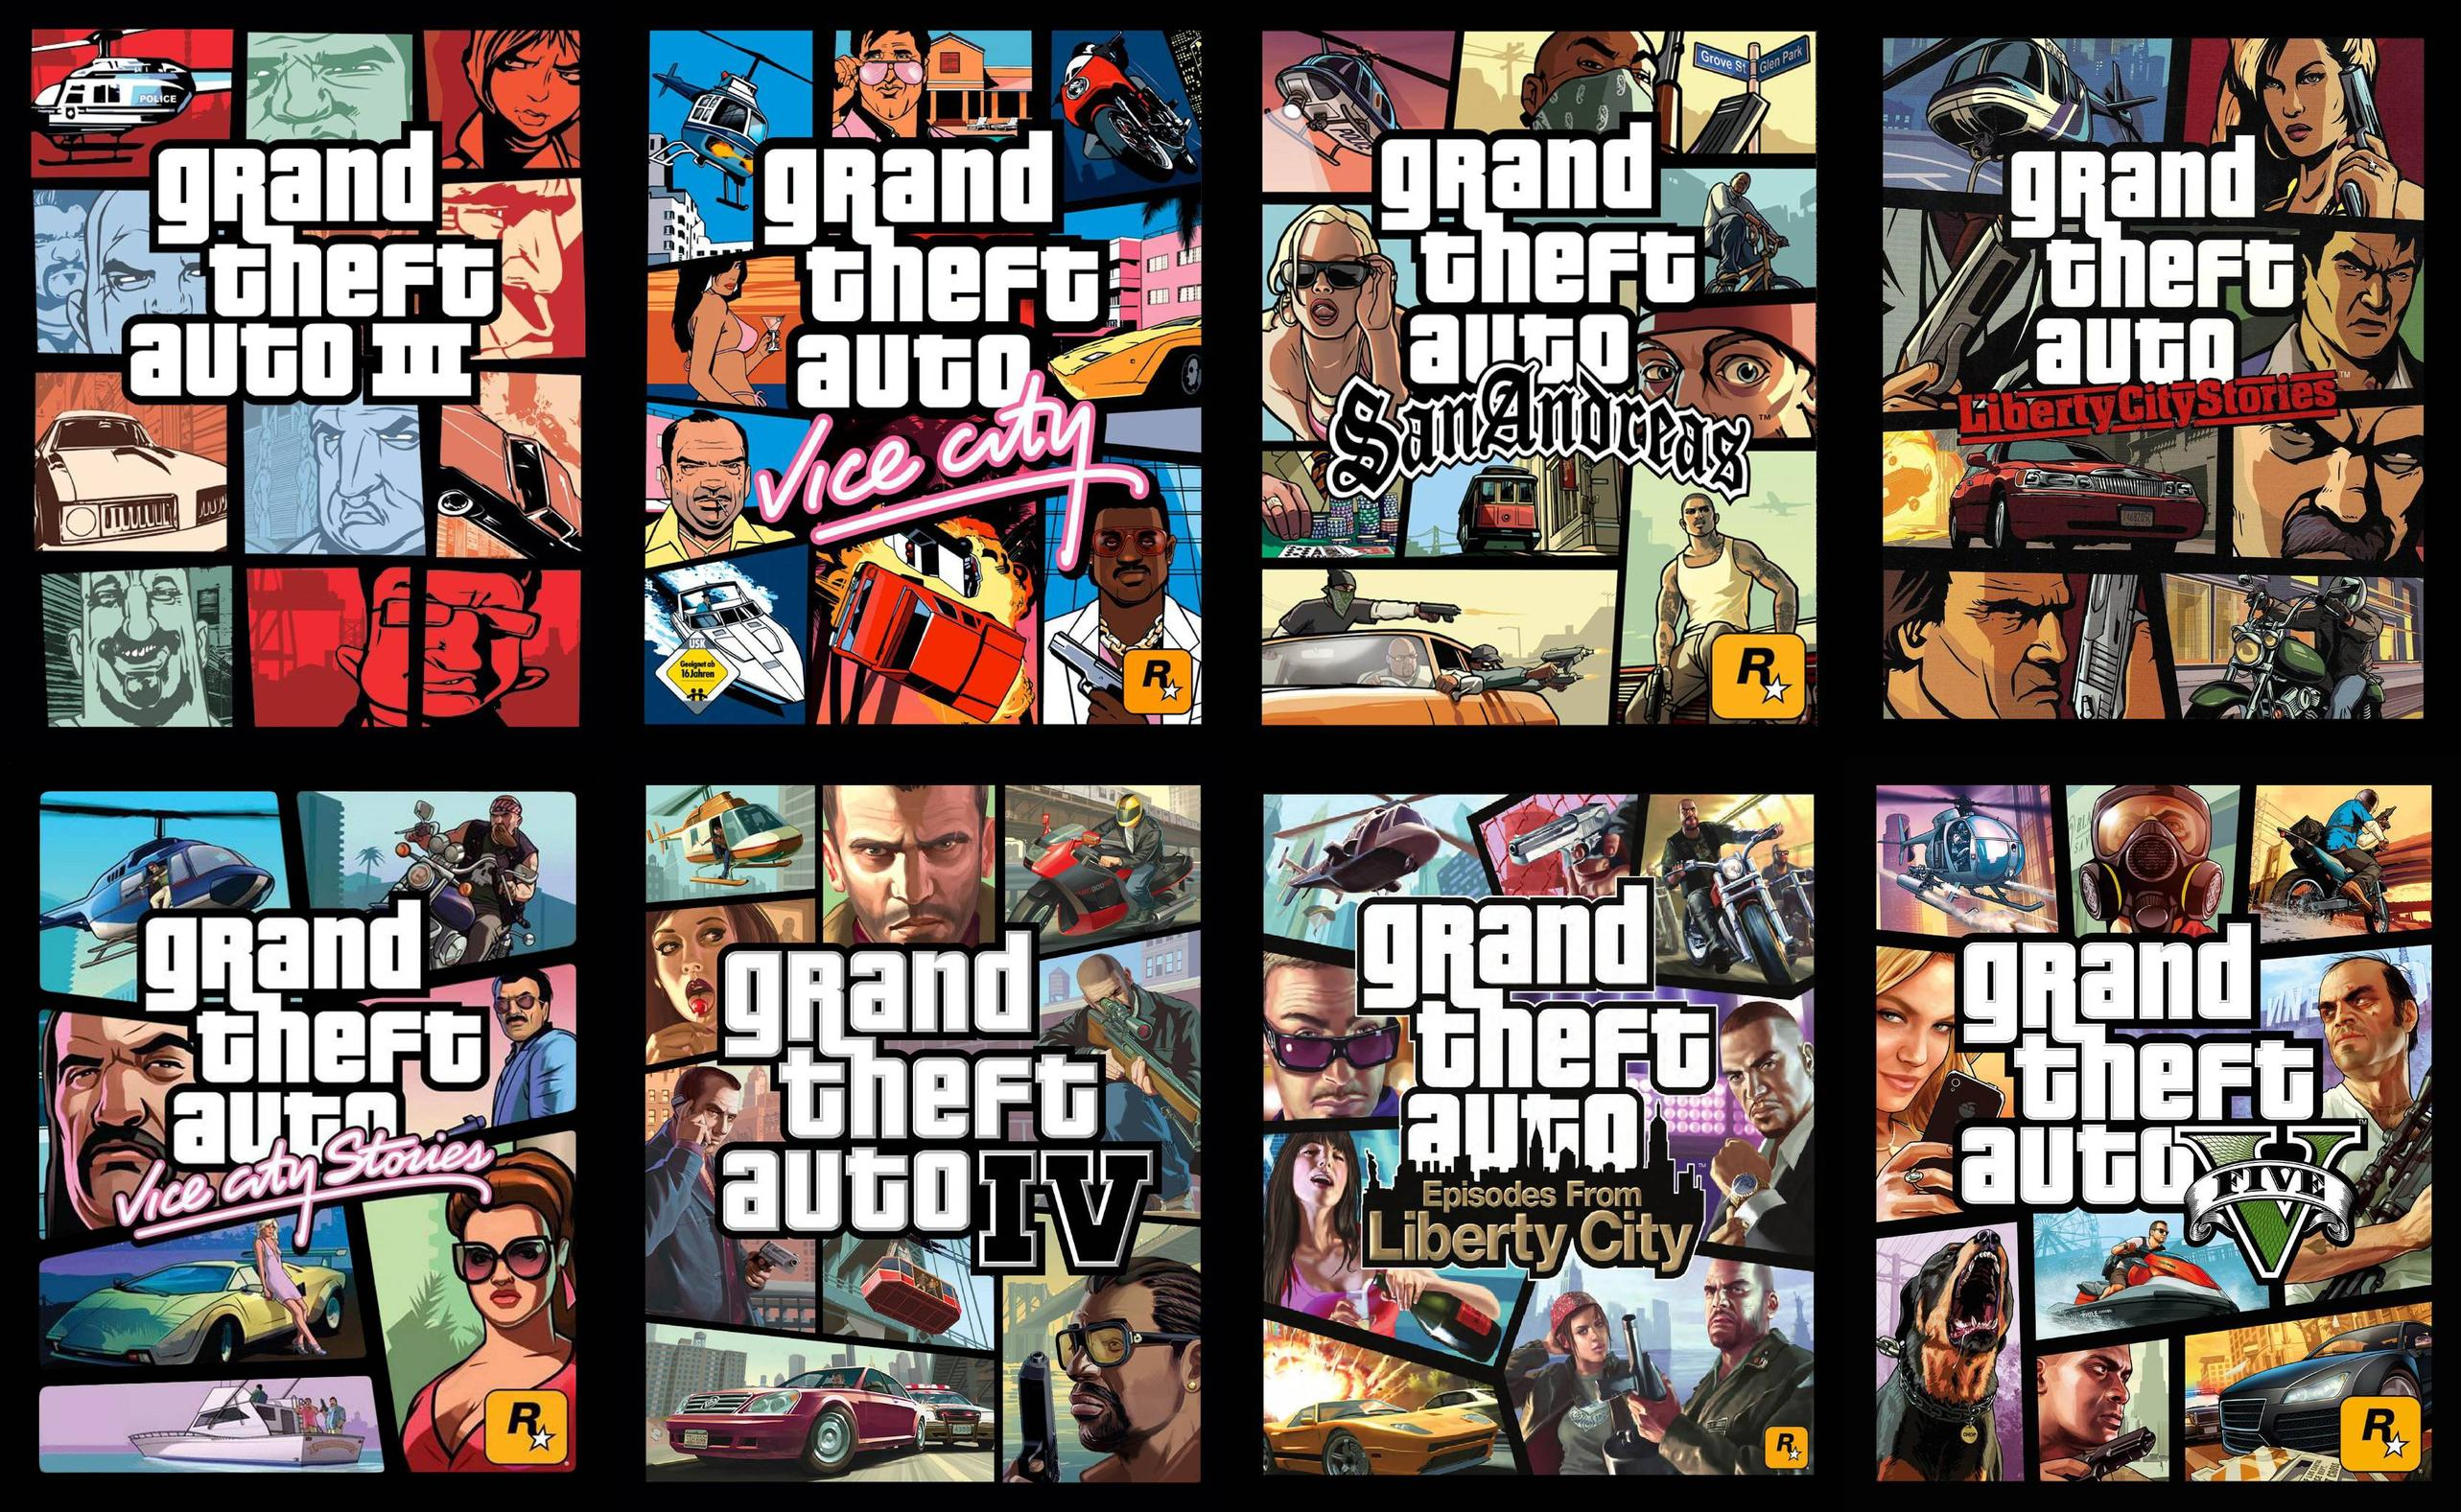 grand theft auto 6 release date in india